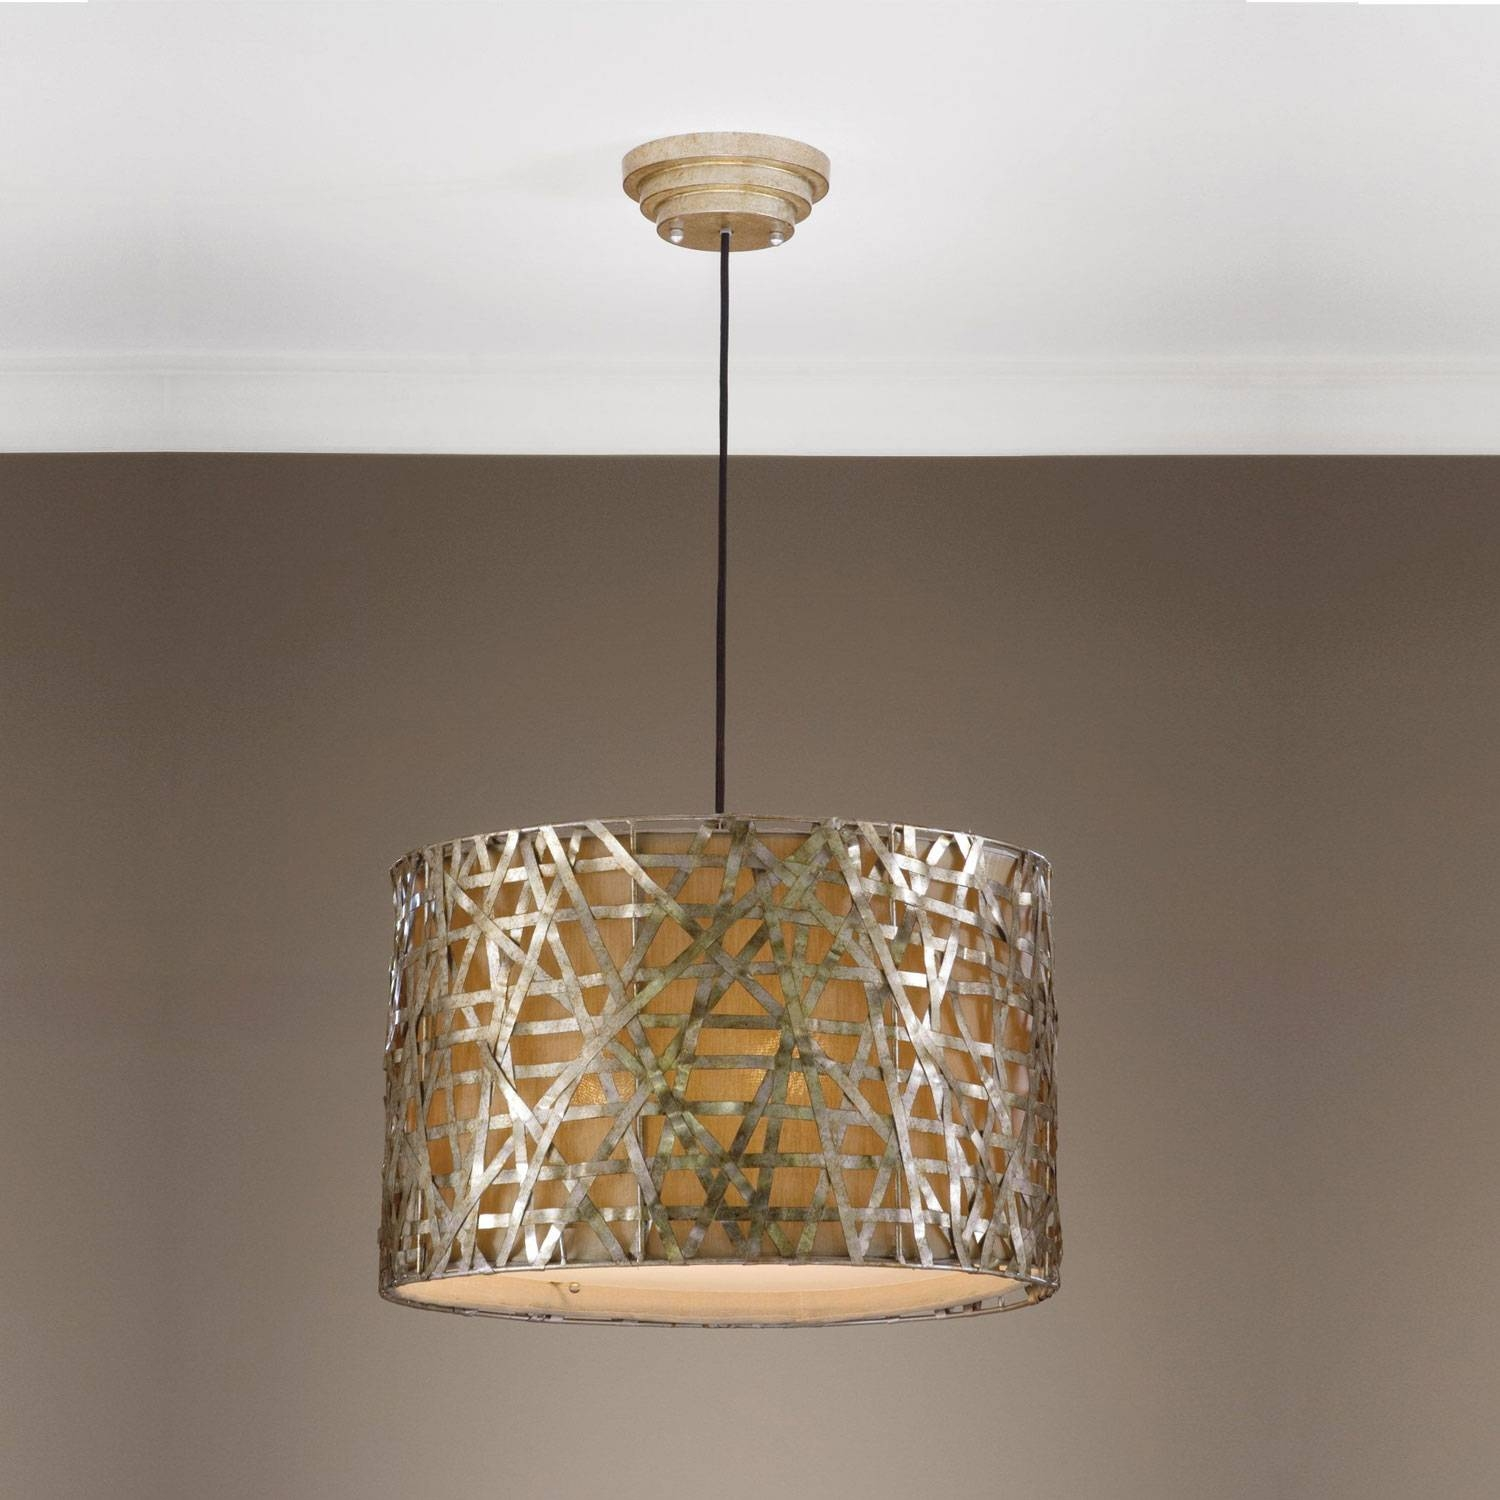 Uttermost Alita Drum Pendant On Sale regarding Uttermost Pendant Lights (Image 13 of 15)